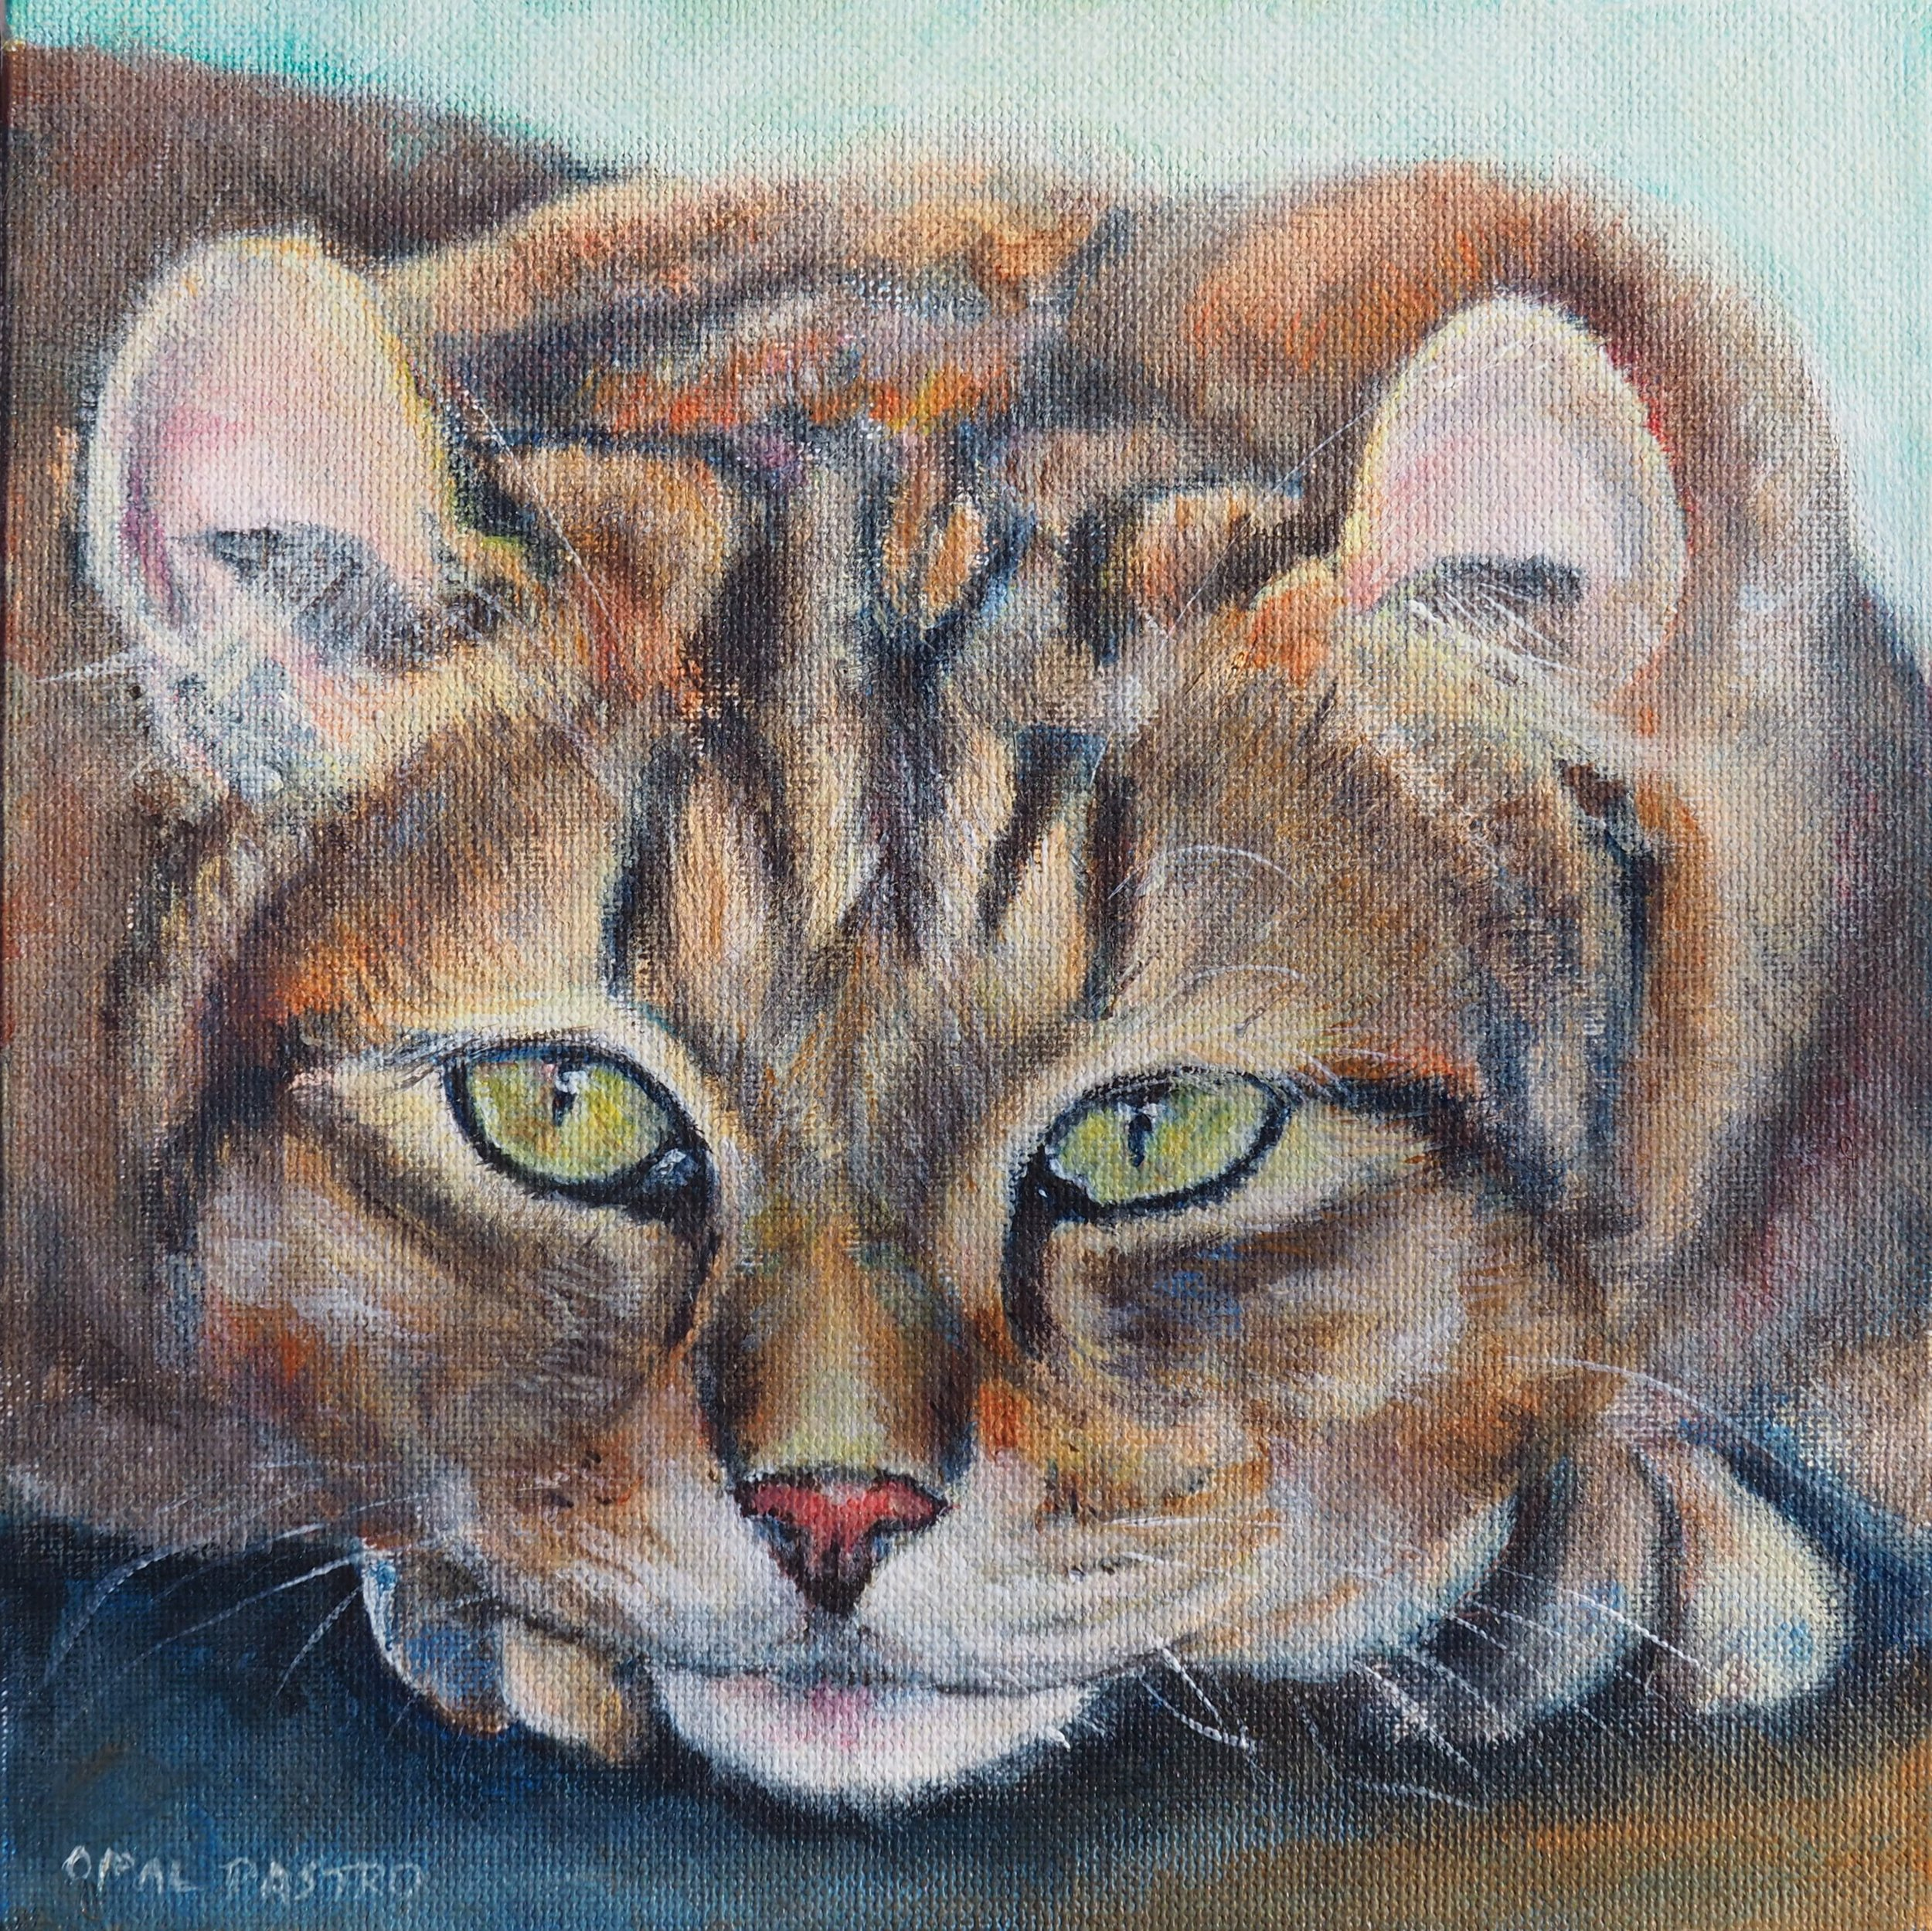 CAT PAINTING OF HIGHLAND LYNX BY OPAL PASTRO ART